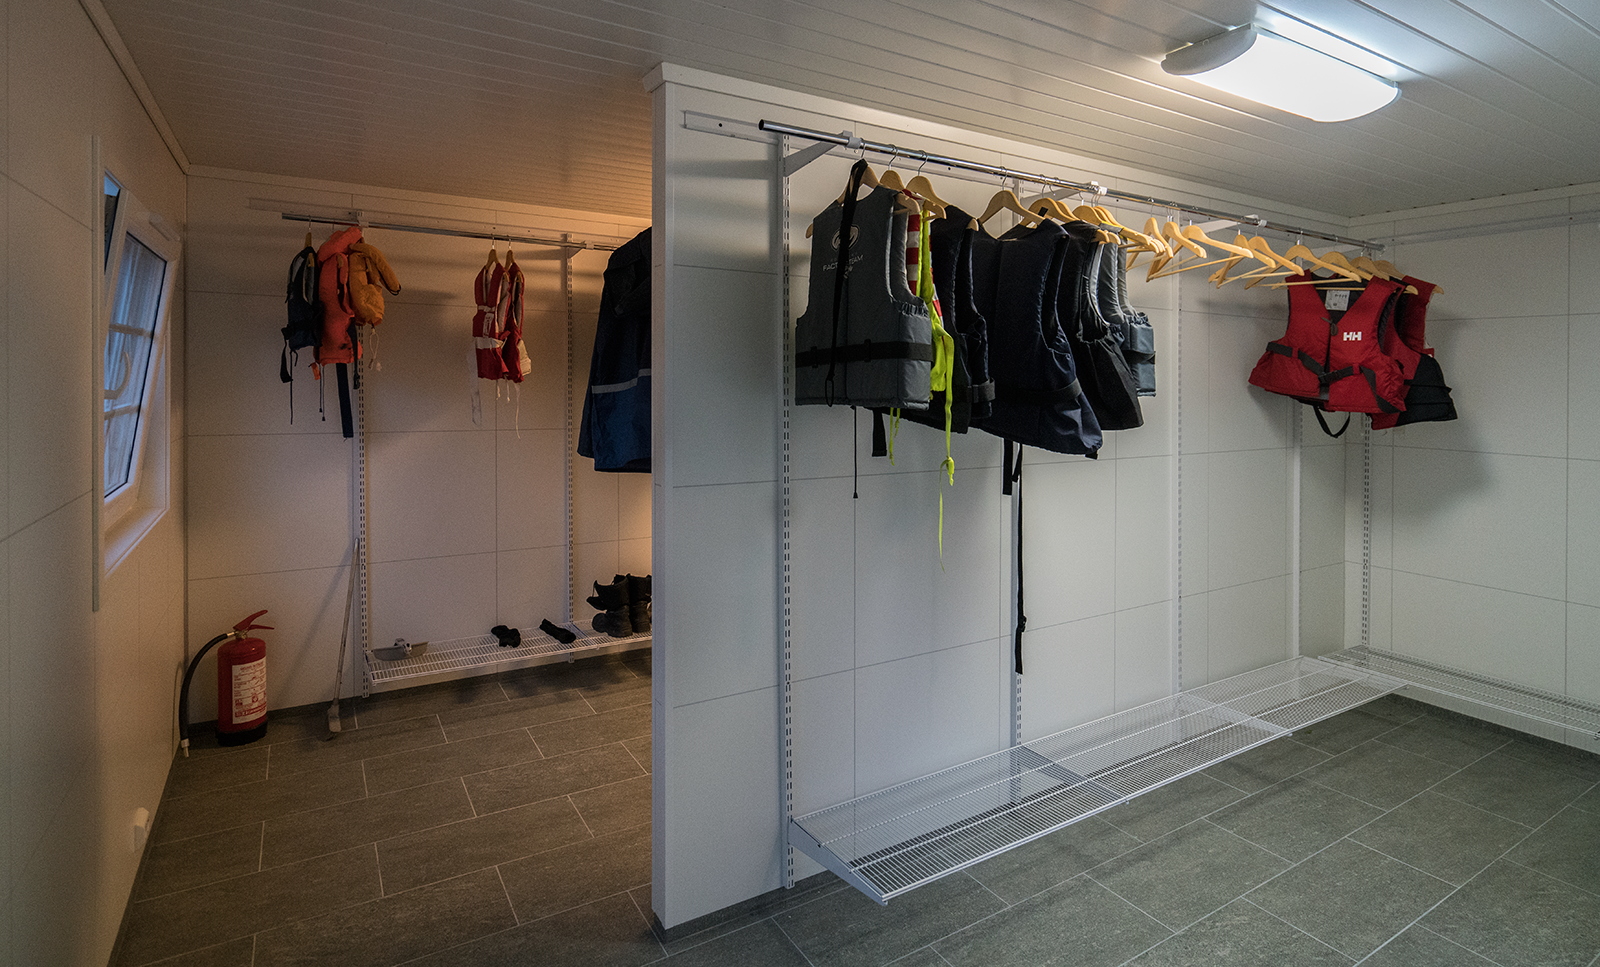 New drying room for work clothes